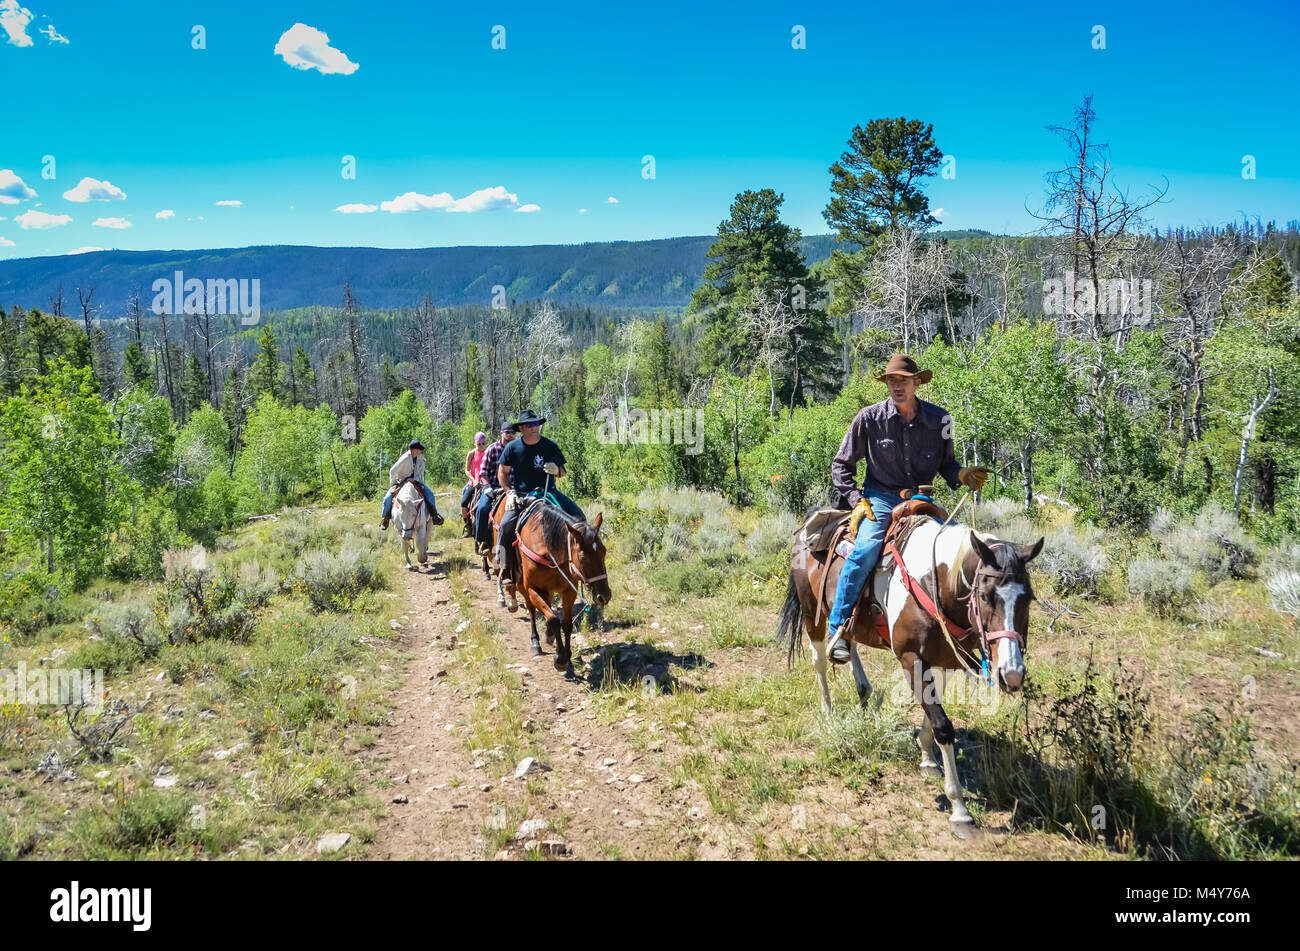 Guided horseback riding tour on mountain trail in Medicine